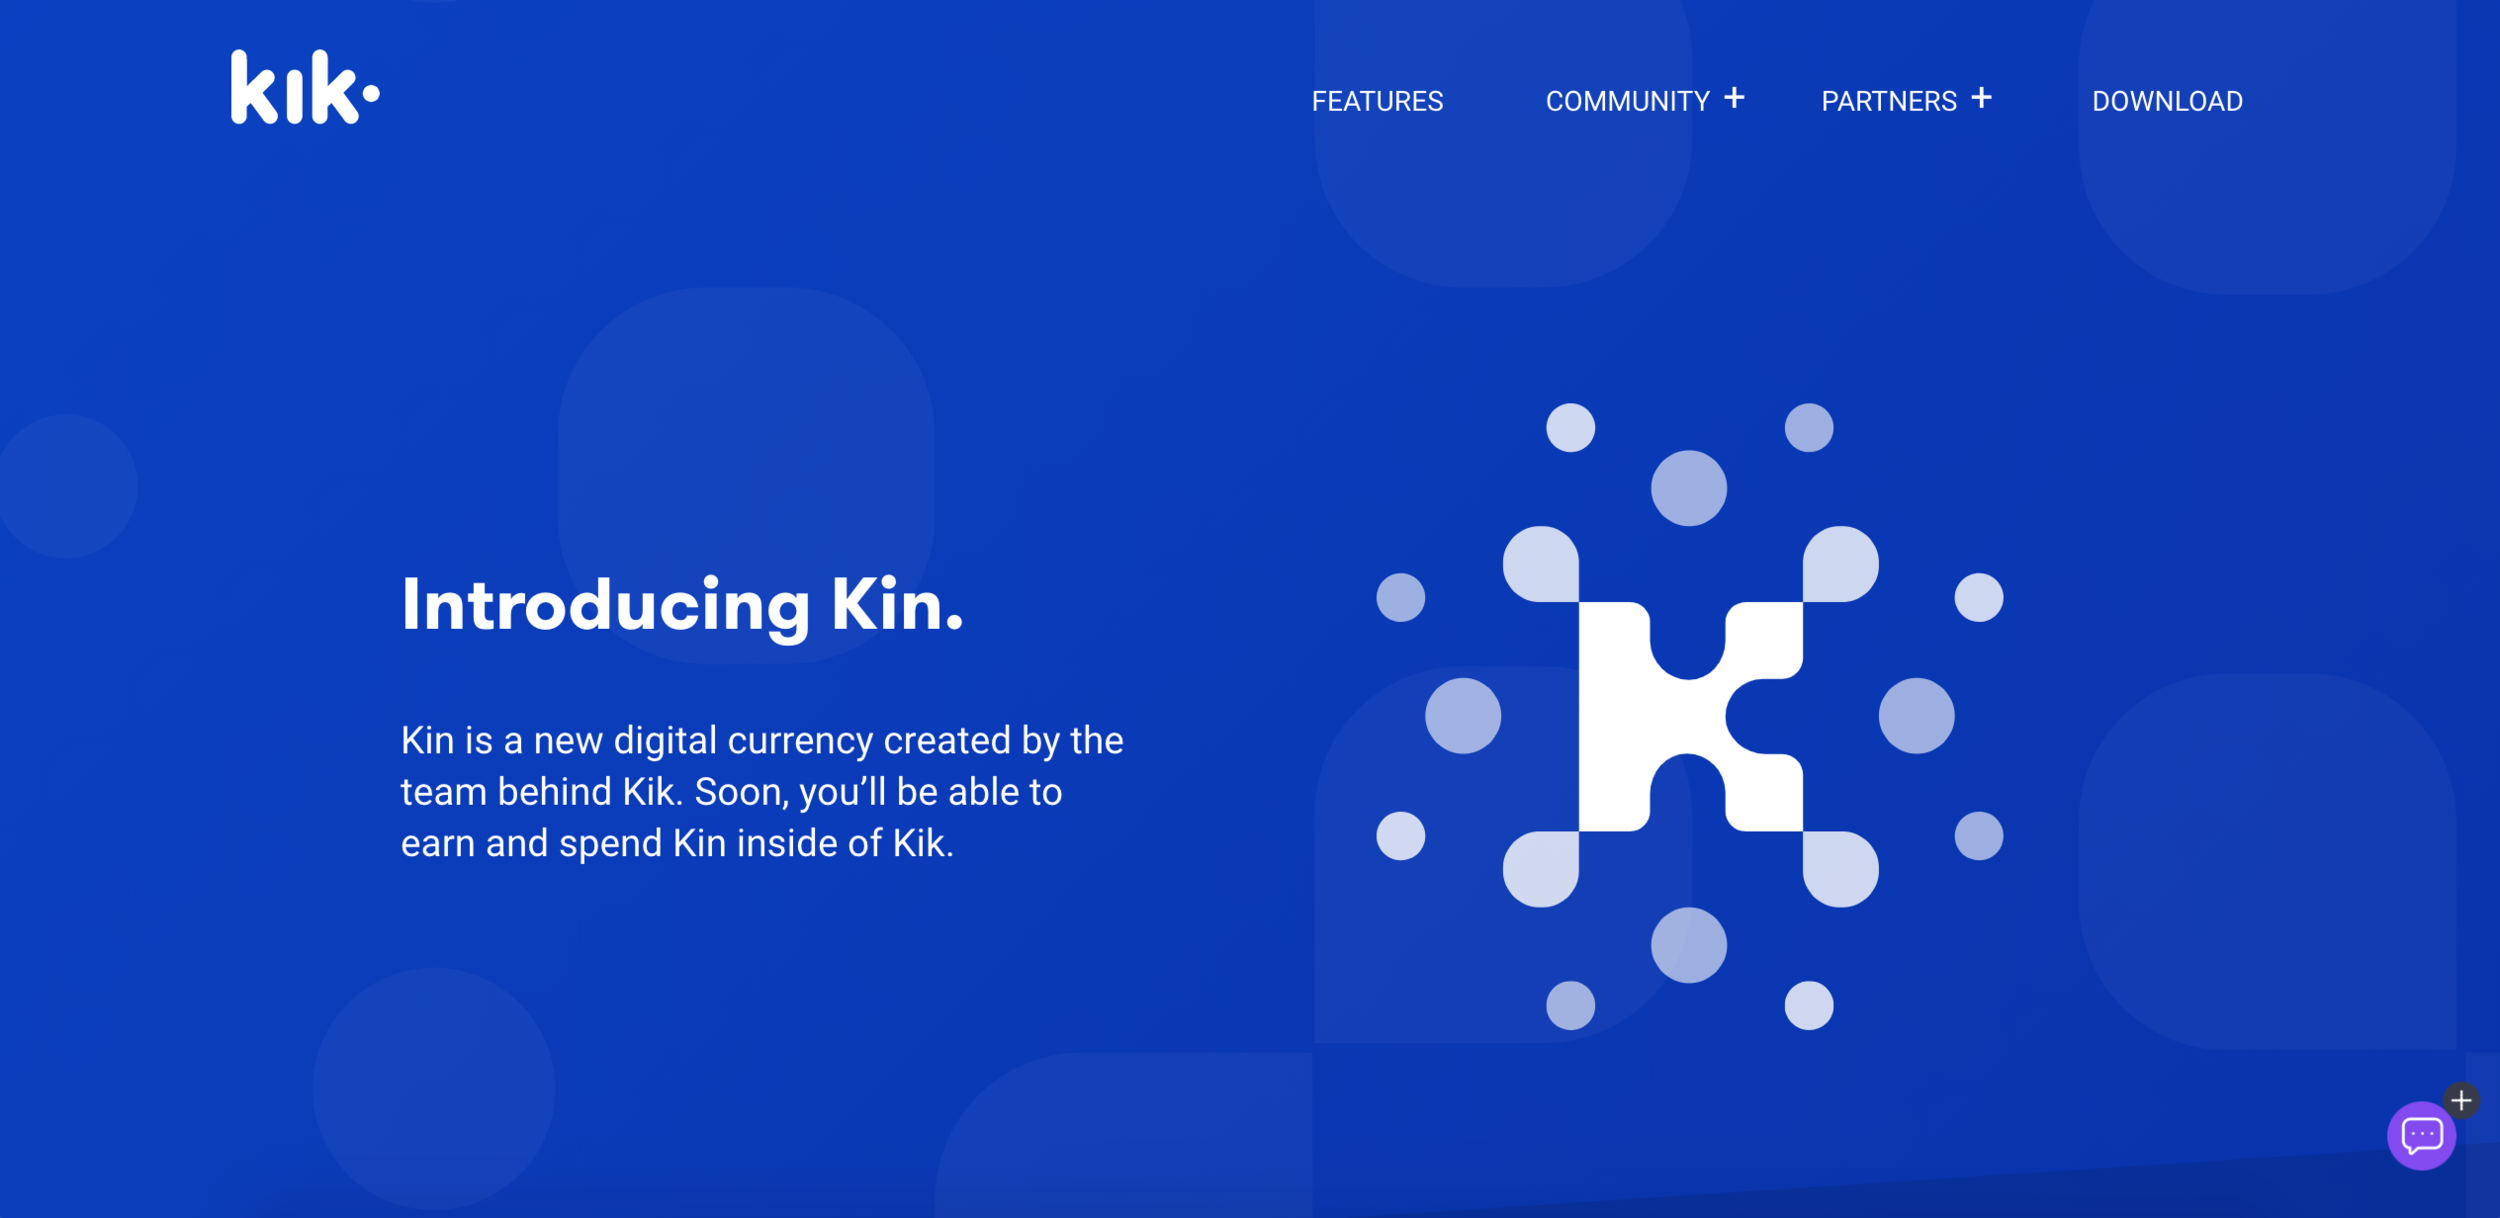 Kin, Kik Interactive's own virtual currency.